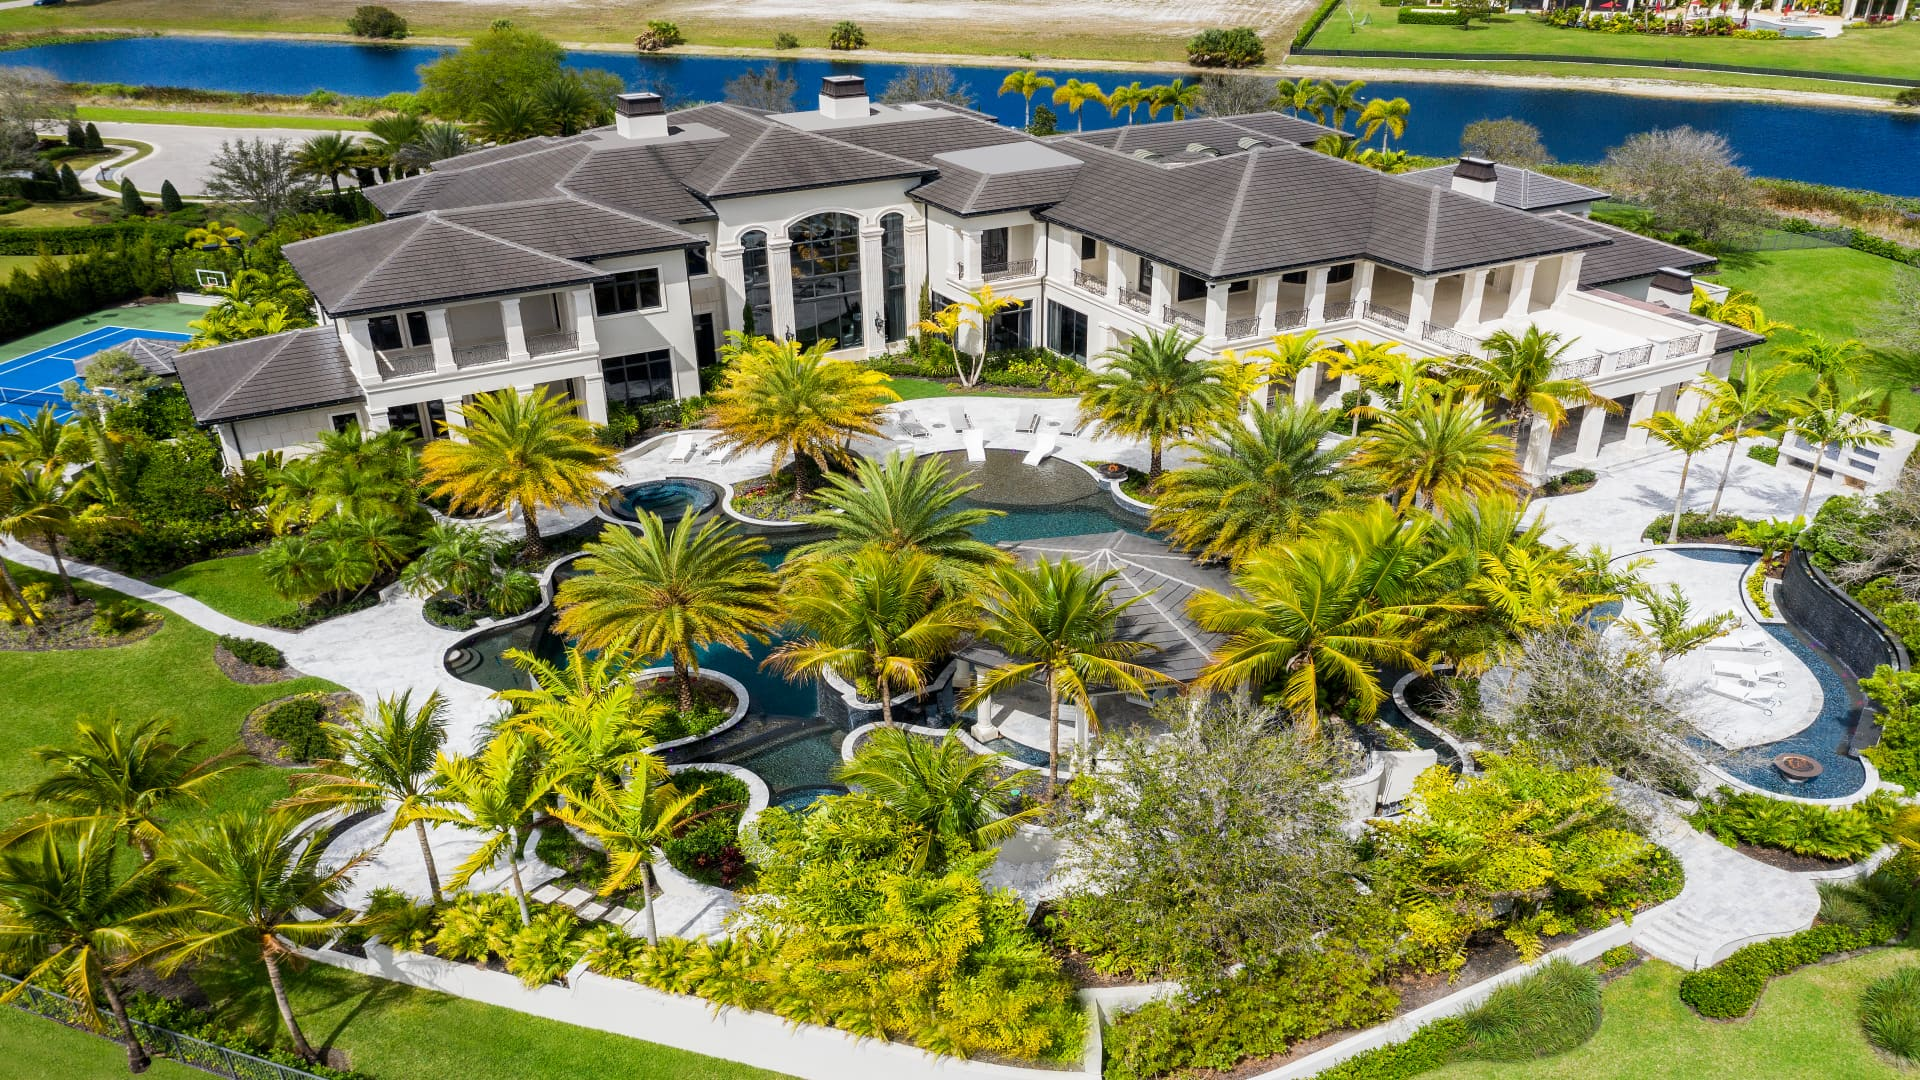 Aerial view of The Rockybrook Estate in Delray Beach, FL